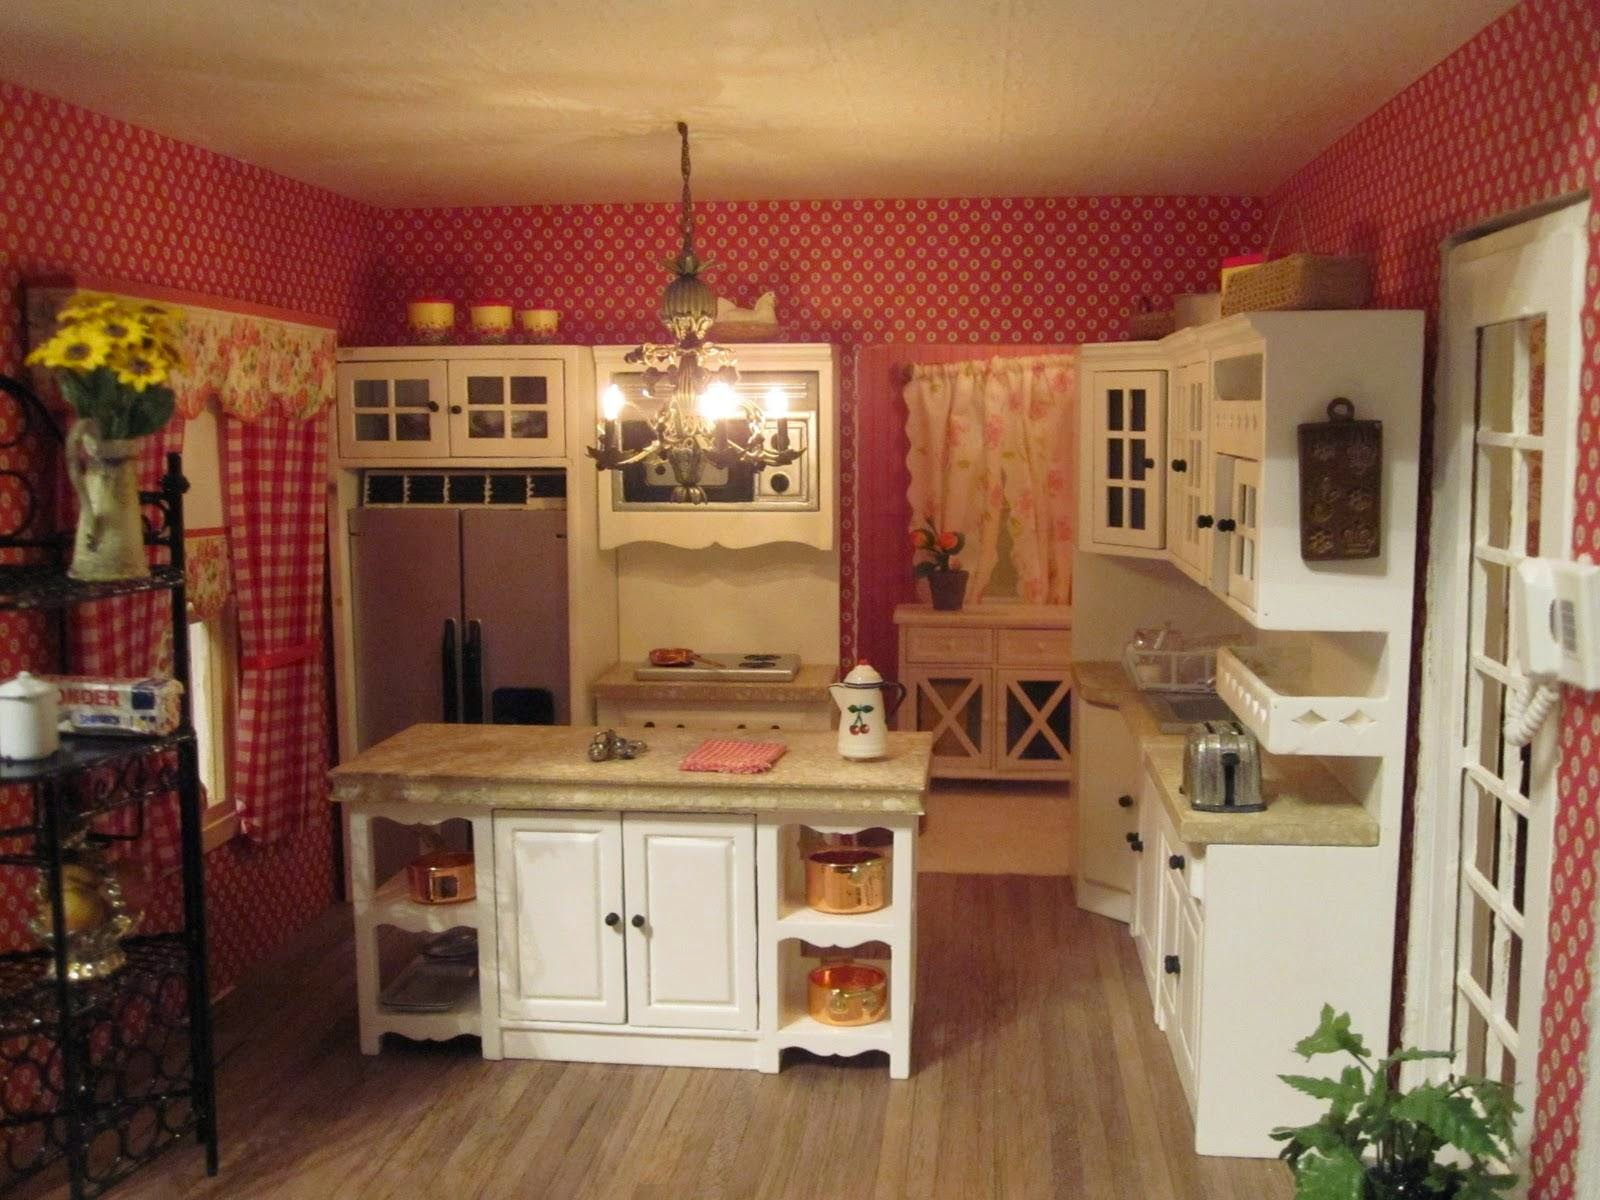 french country kitchen wallpaper is a part of french country kitchen 1600x1200